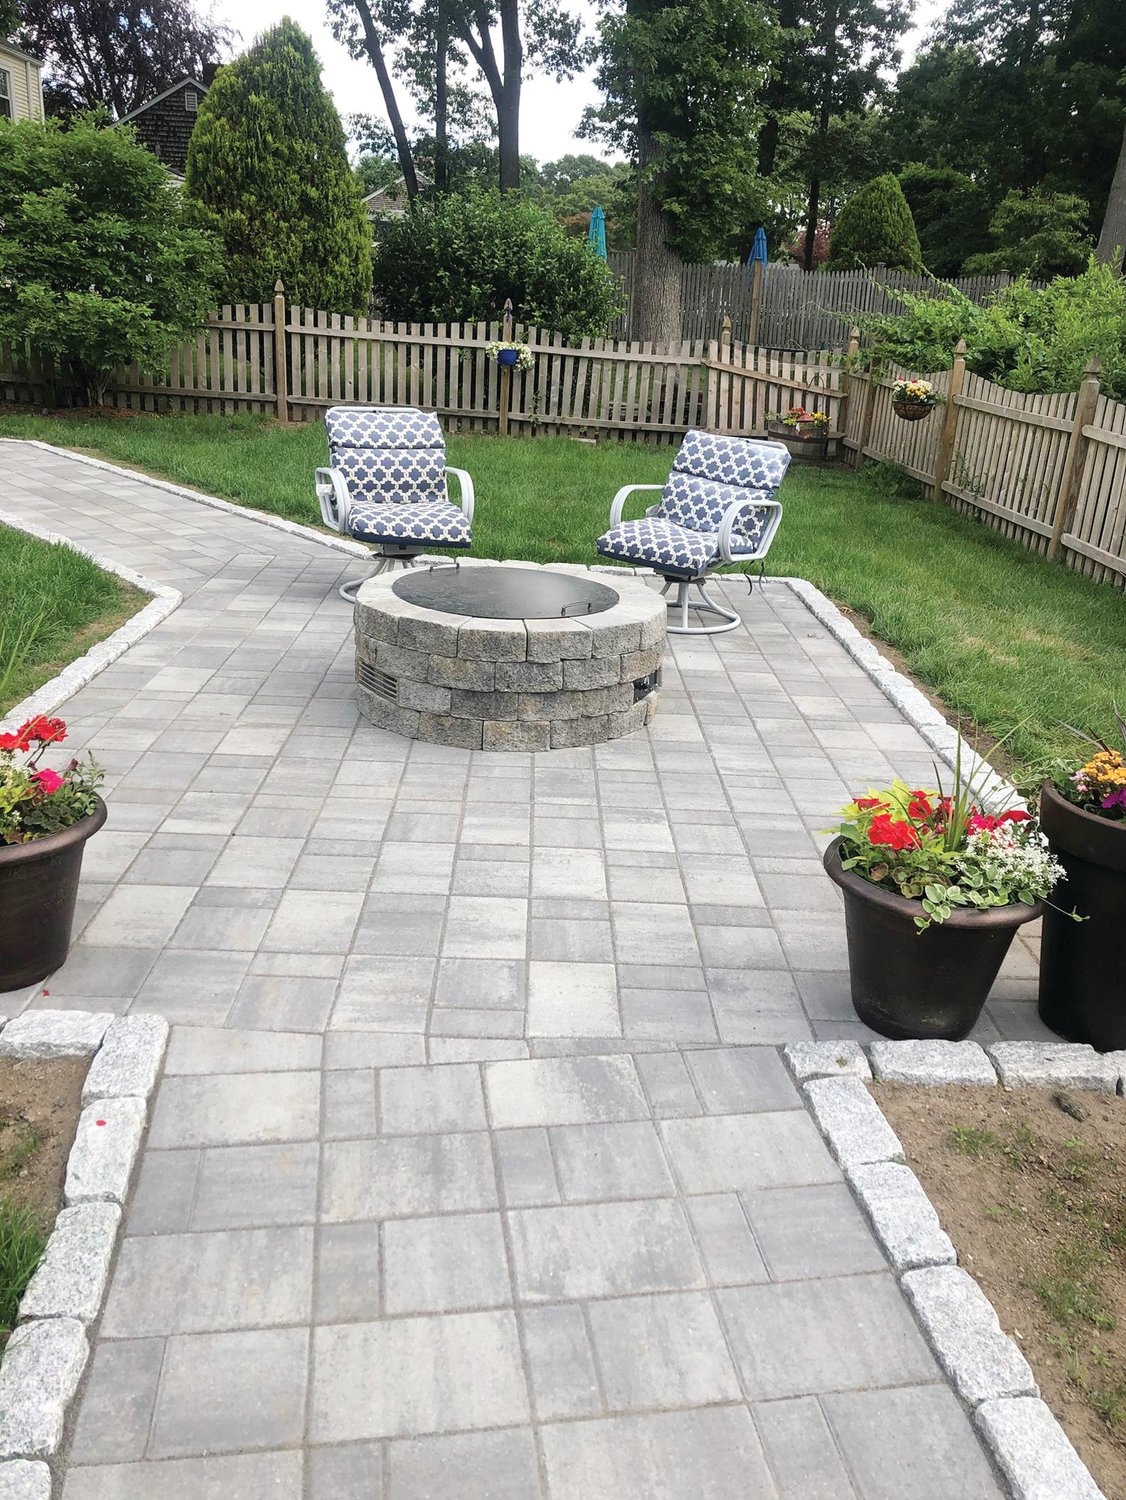 Spending more time at home during the pandemic inspires homeowners to renovate their yards with features such as this patio with fire pit installed by Yard Service Landscape Experts.